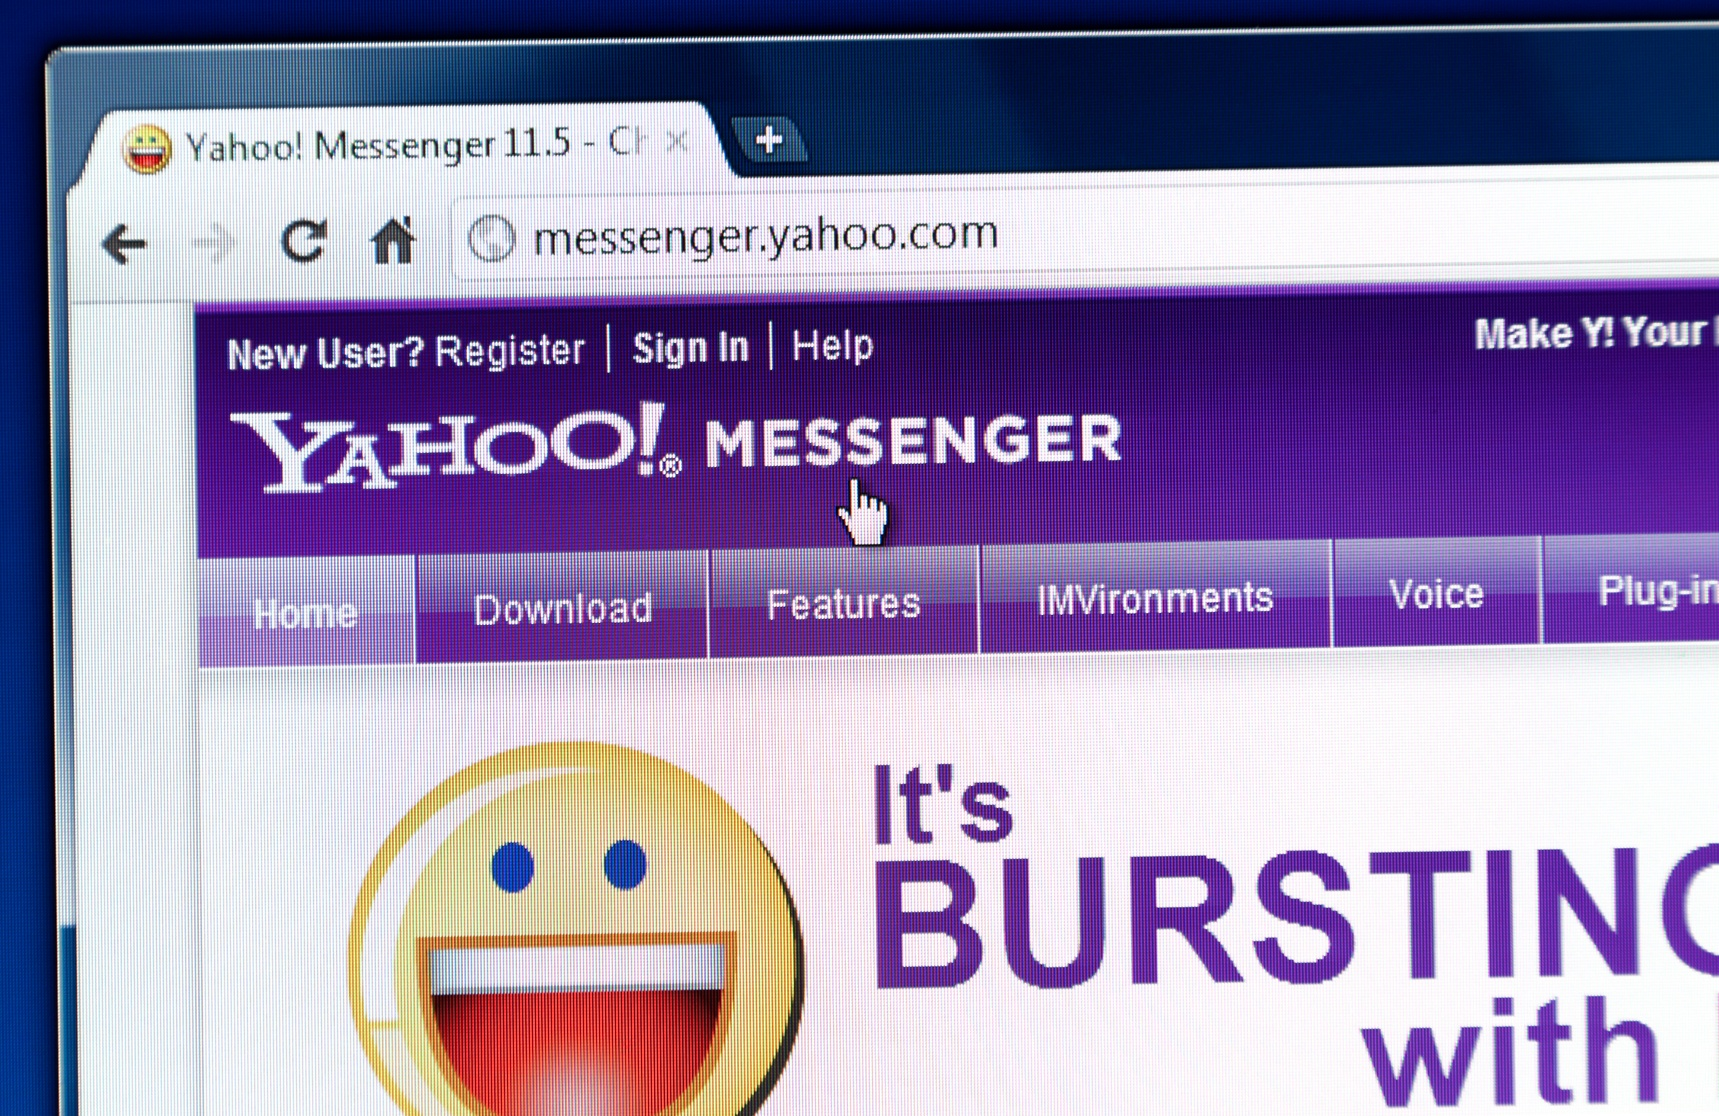 Yahoo-Messenger-on-web-browser-000018765897_Medium_1.jpg